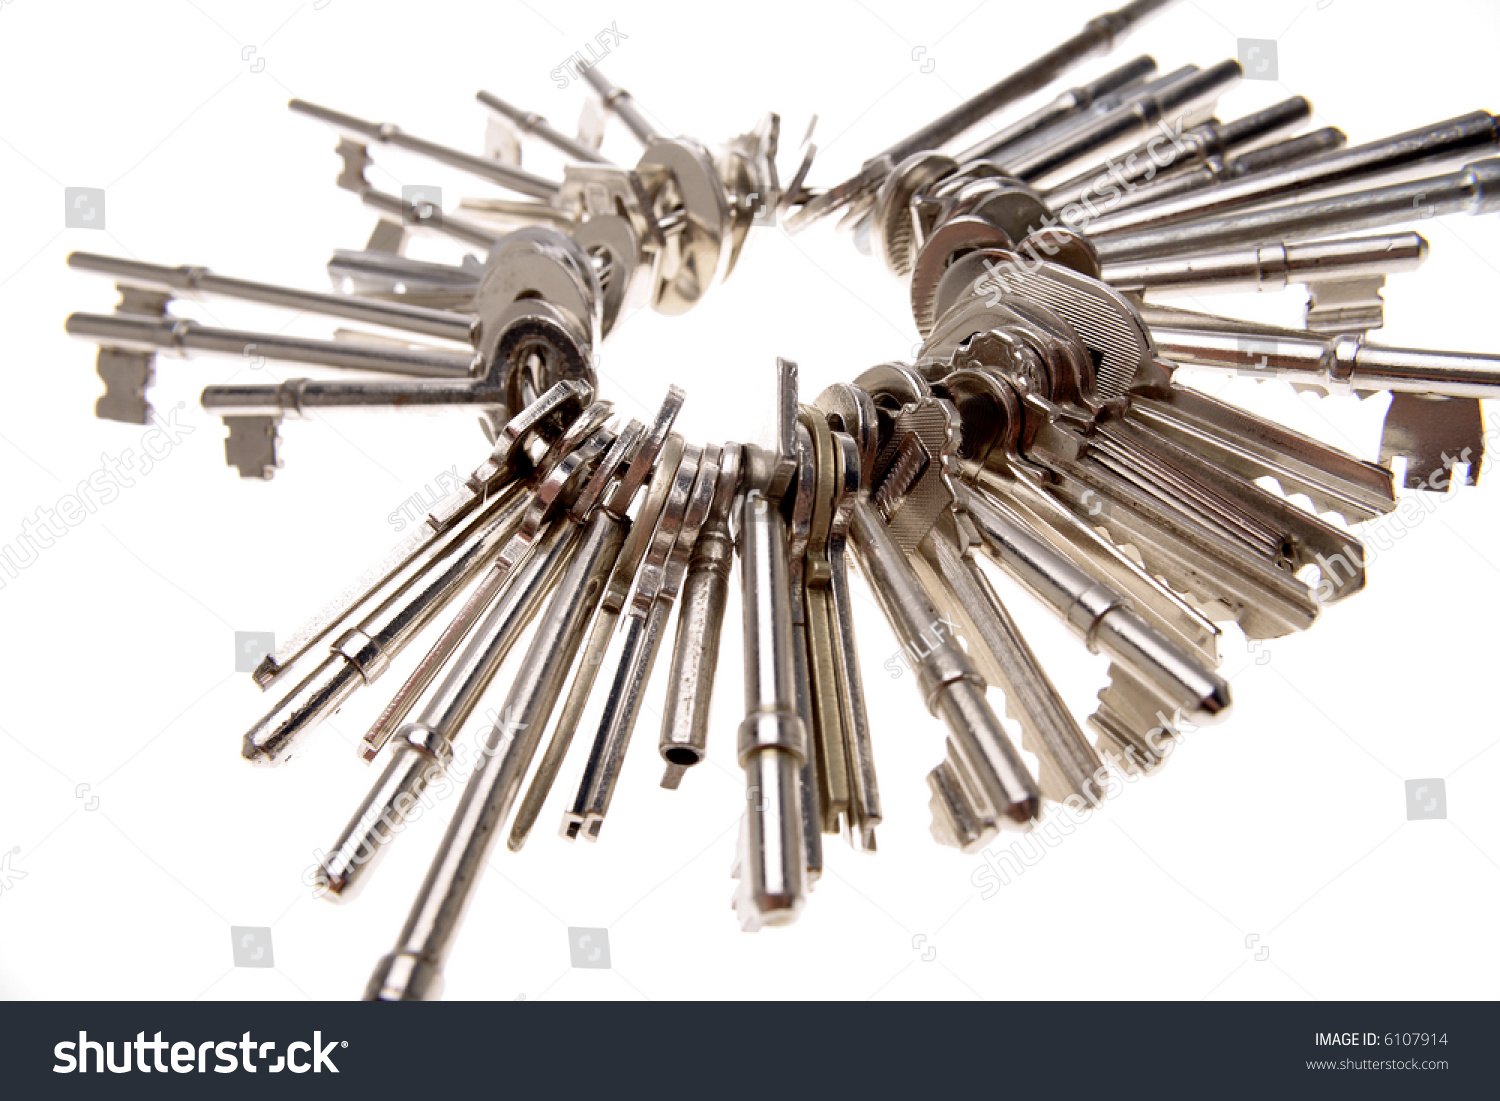 https://image.shutterstock.com/z/stock-photo-keys-on-keyring-over-white-6107914.jpg